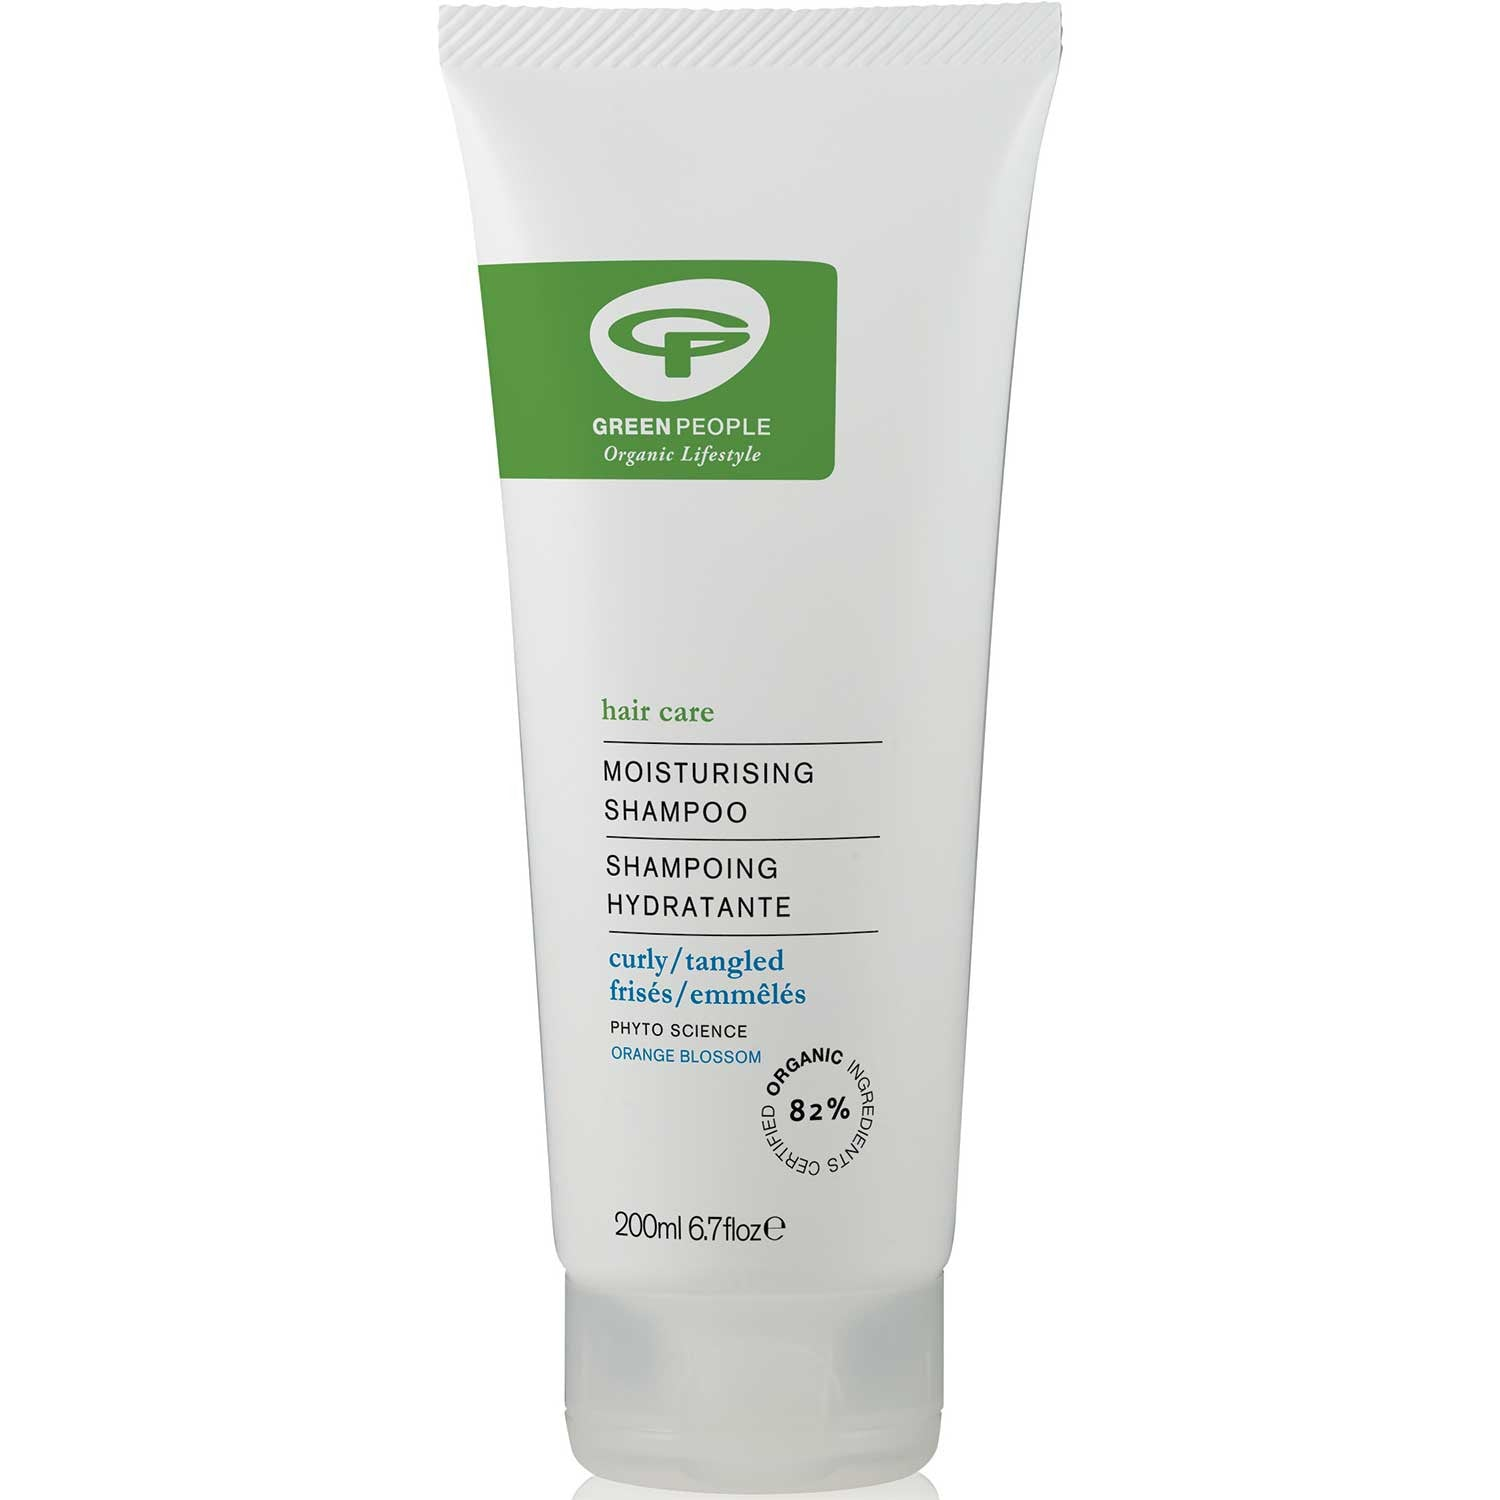 Green People Moisturizing Shampoo, 200 ml.-NaturesWisdom